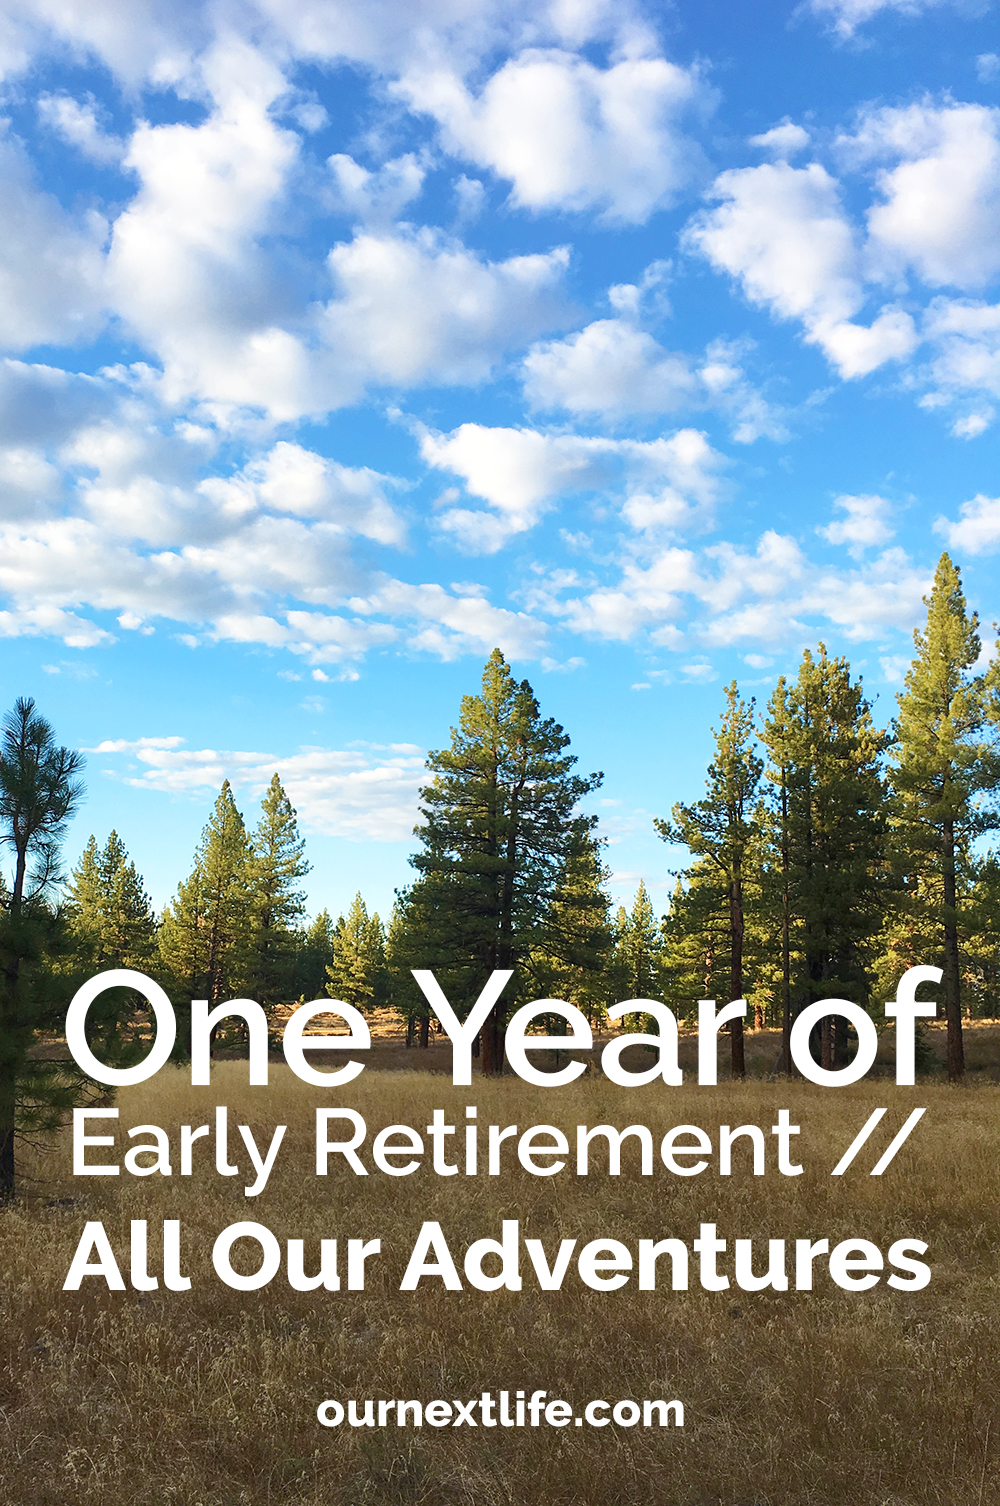 One Year of Early Retirement, Part 2: All Our Adventures // Our Next Life: work-optional living, early retirement, financial independence, FIRE, happiness